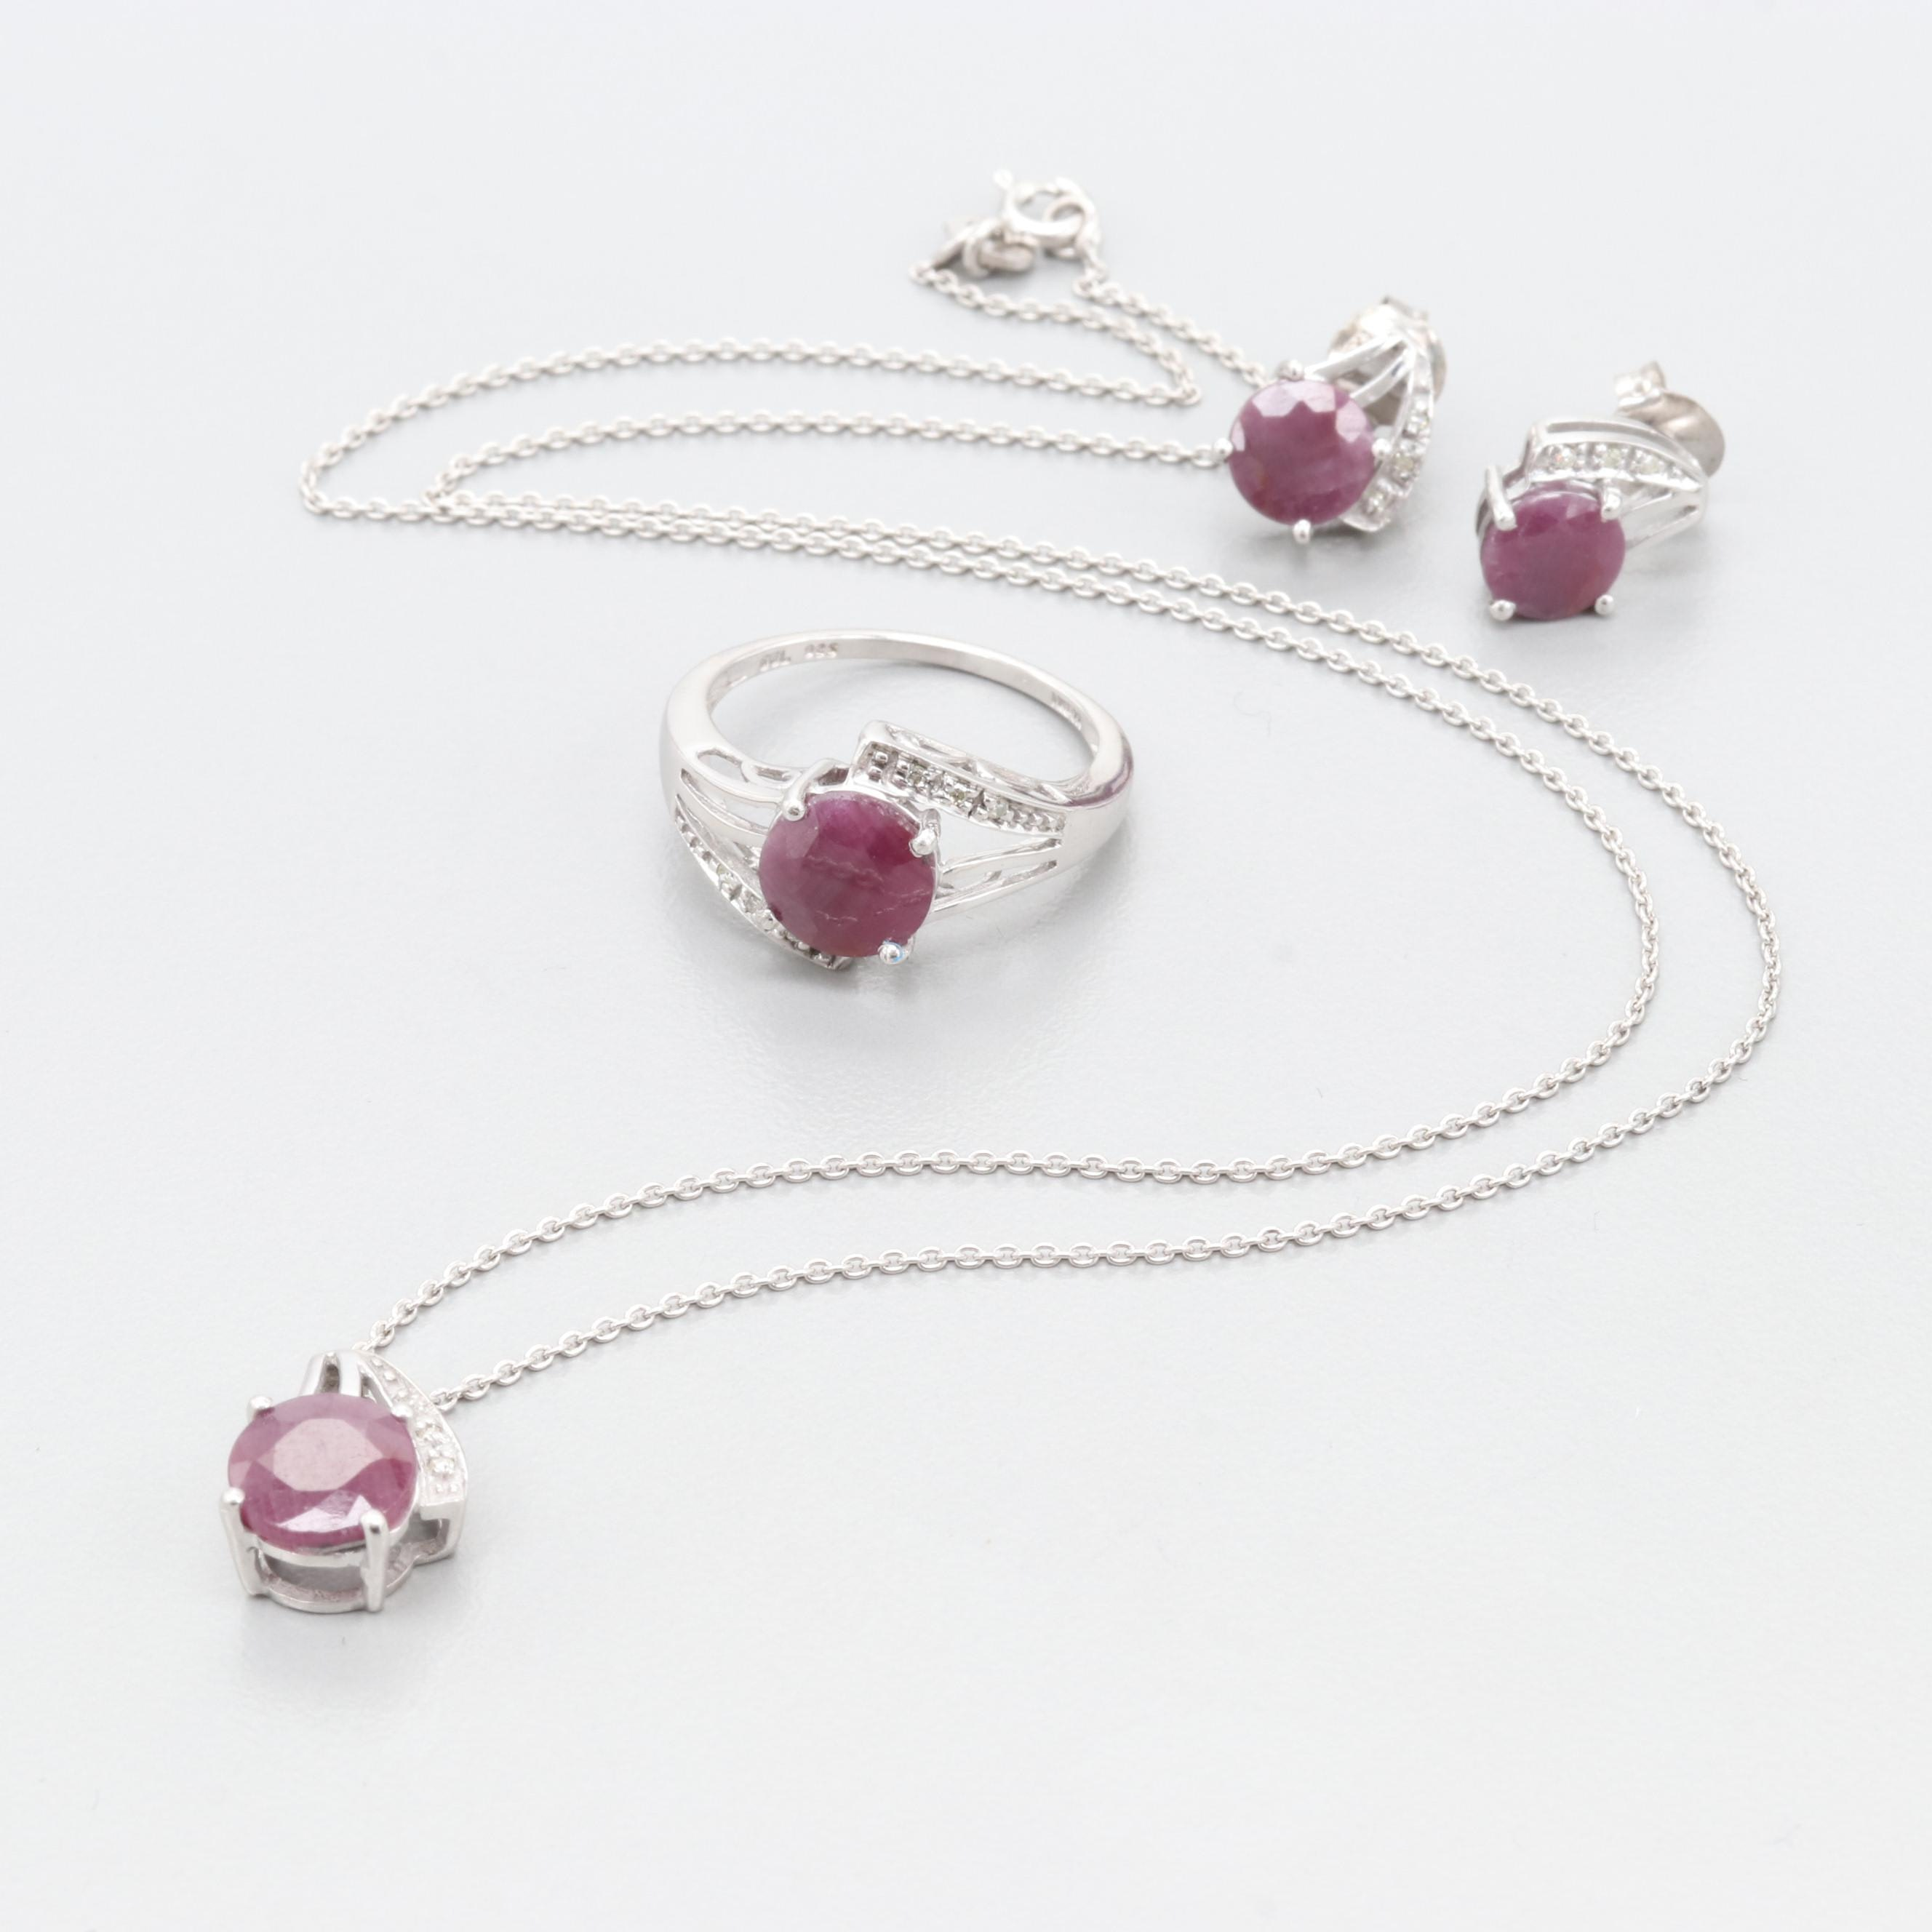 Sterling Silver Ruby and Diamond Necklace, Ring and Earrings